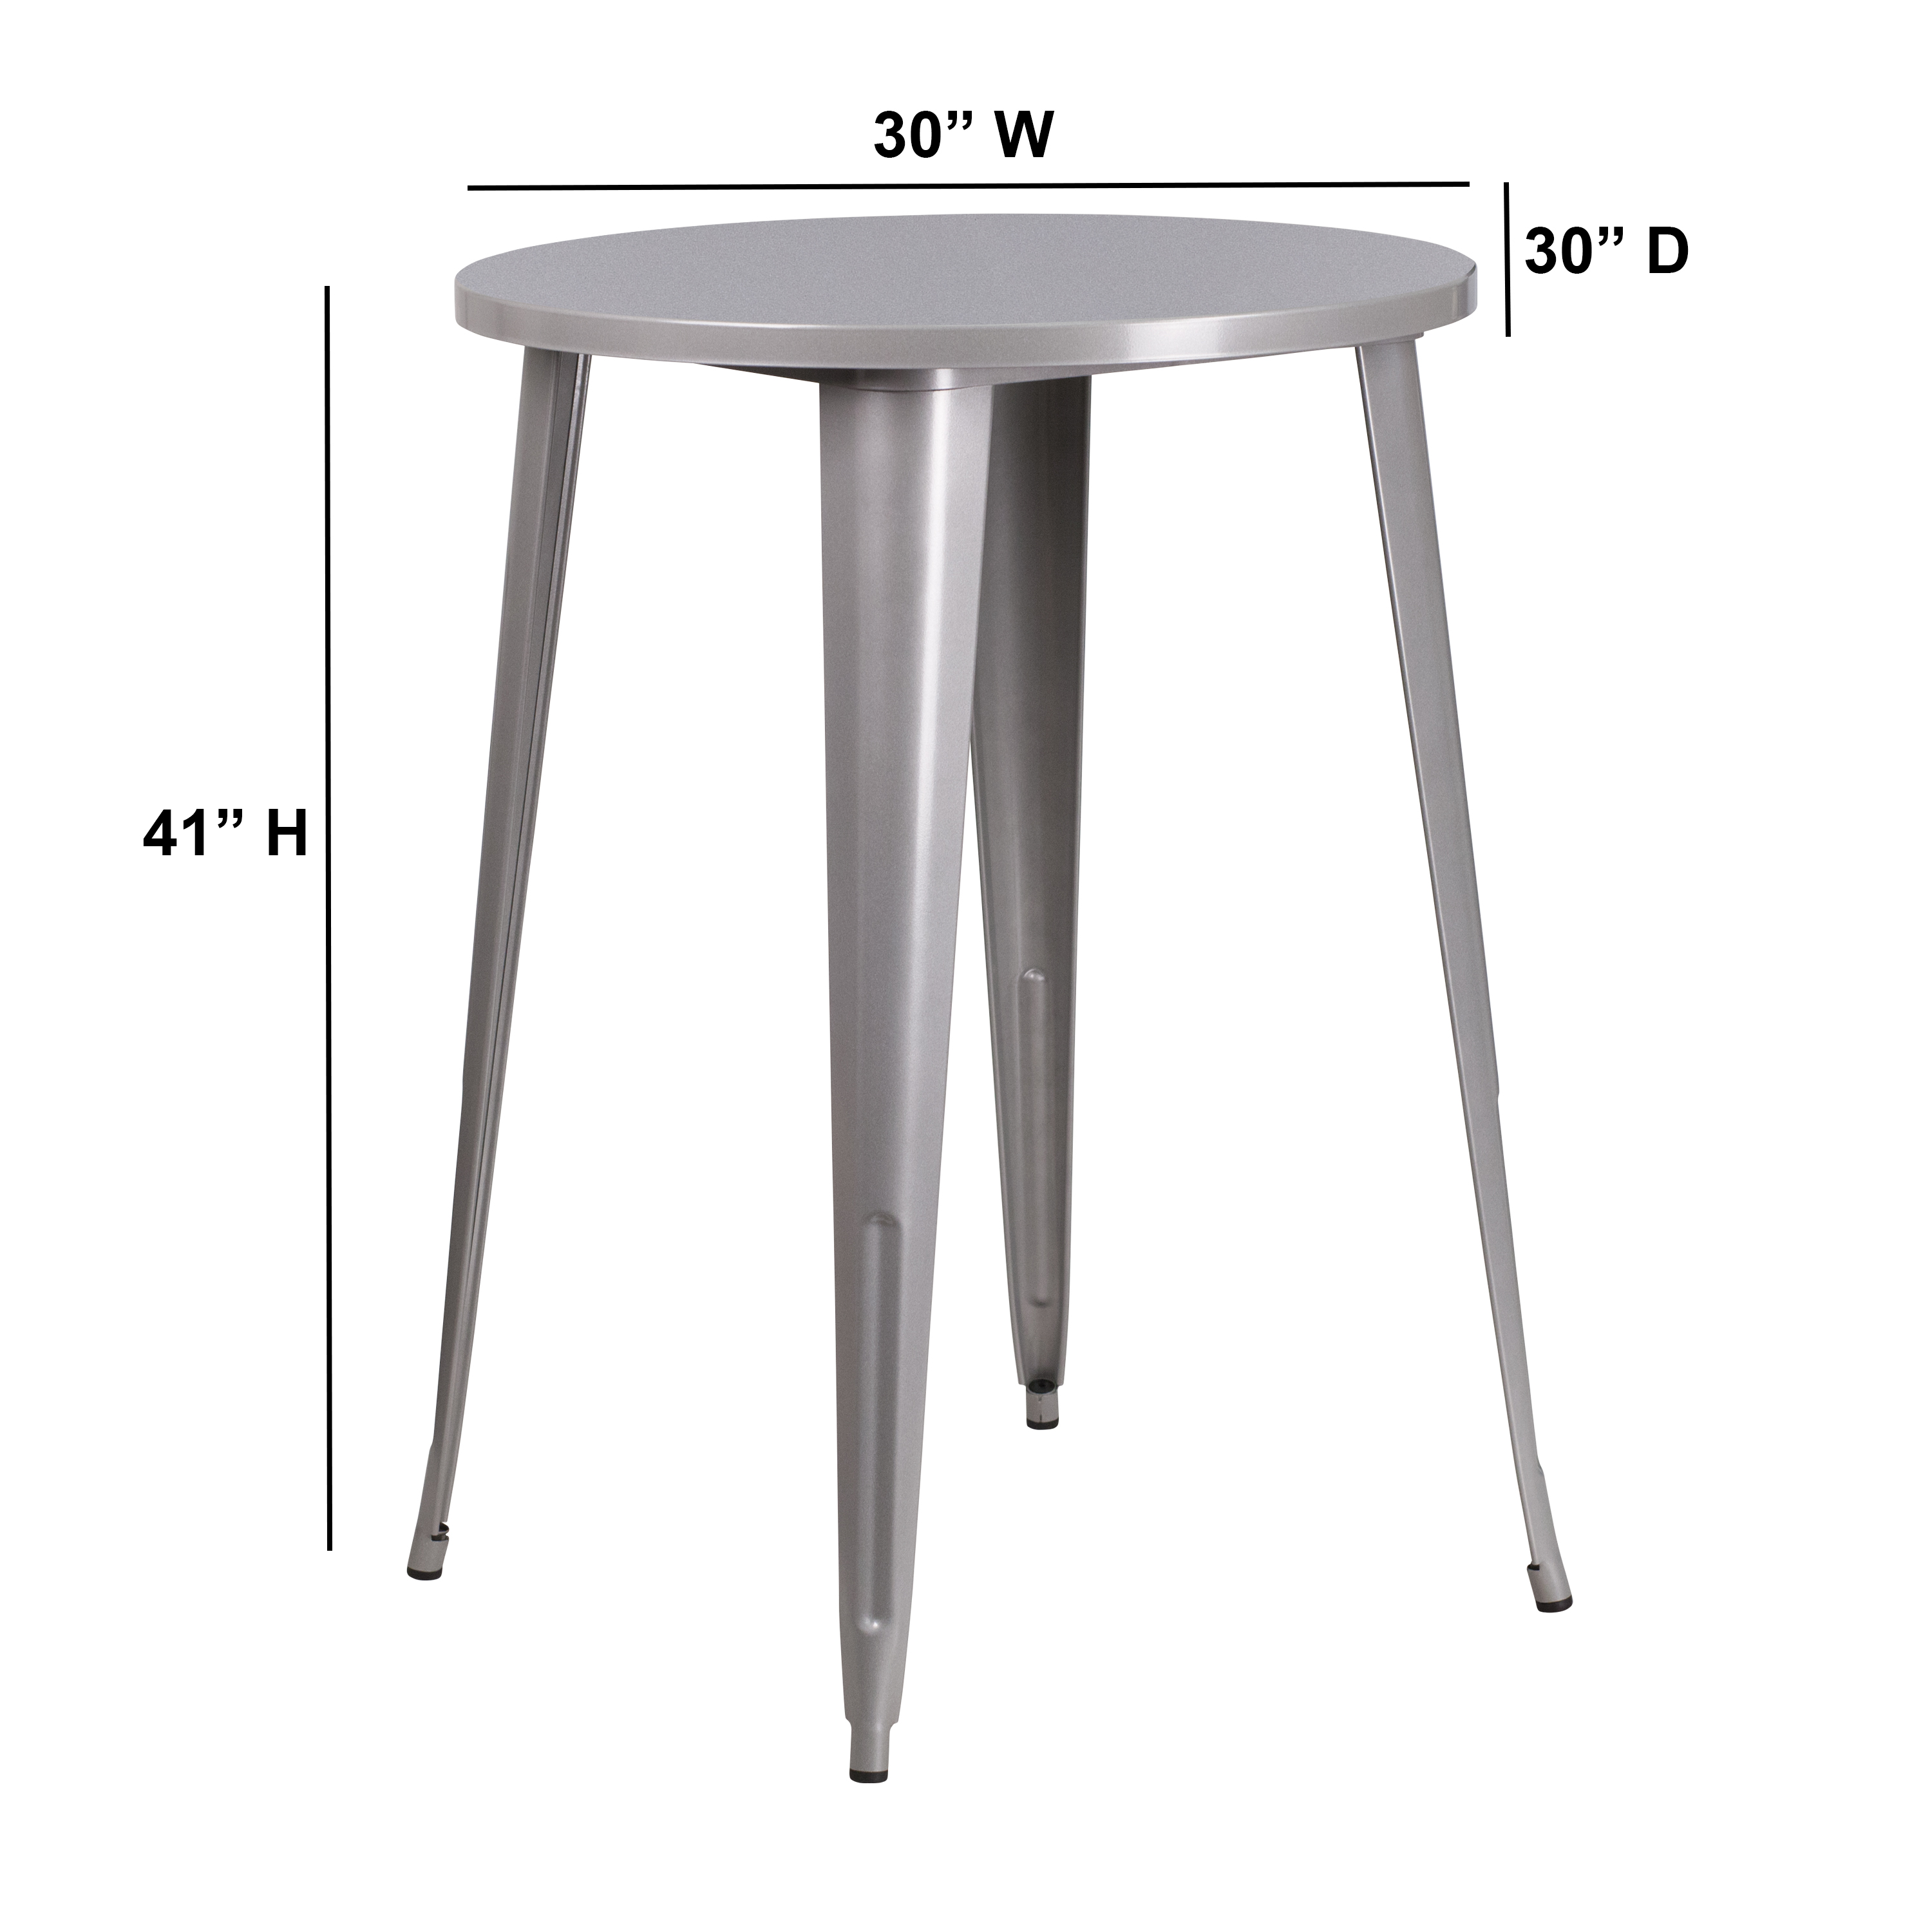 Astounding Details About 30 Round Colorful Metal Indoor Outdoor Bar Height Dining Table Home Interior And Landscaping Ologienasavecom